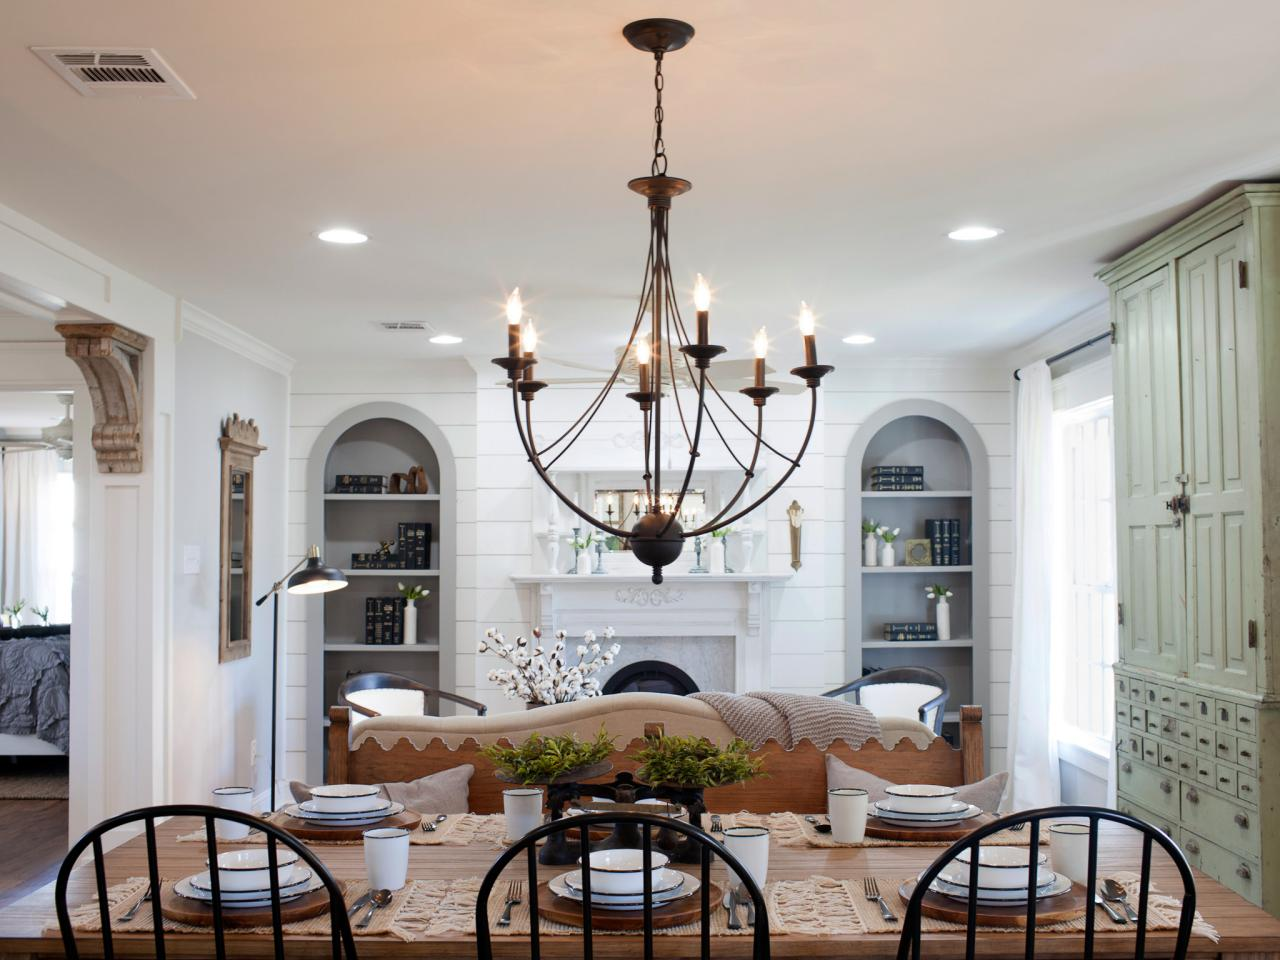 Fixer upper kitchen pendants - Living Room Before